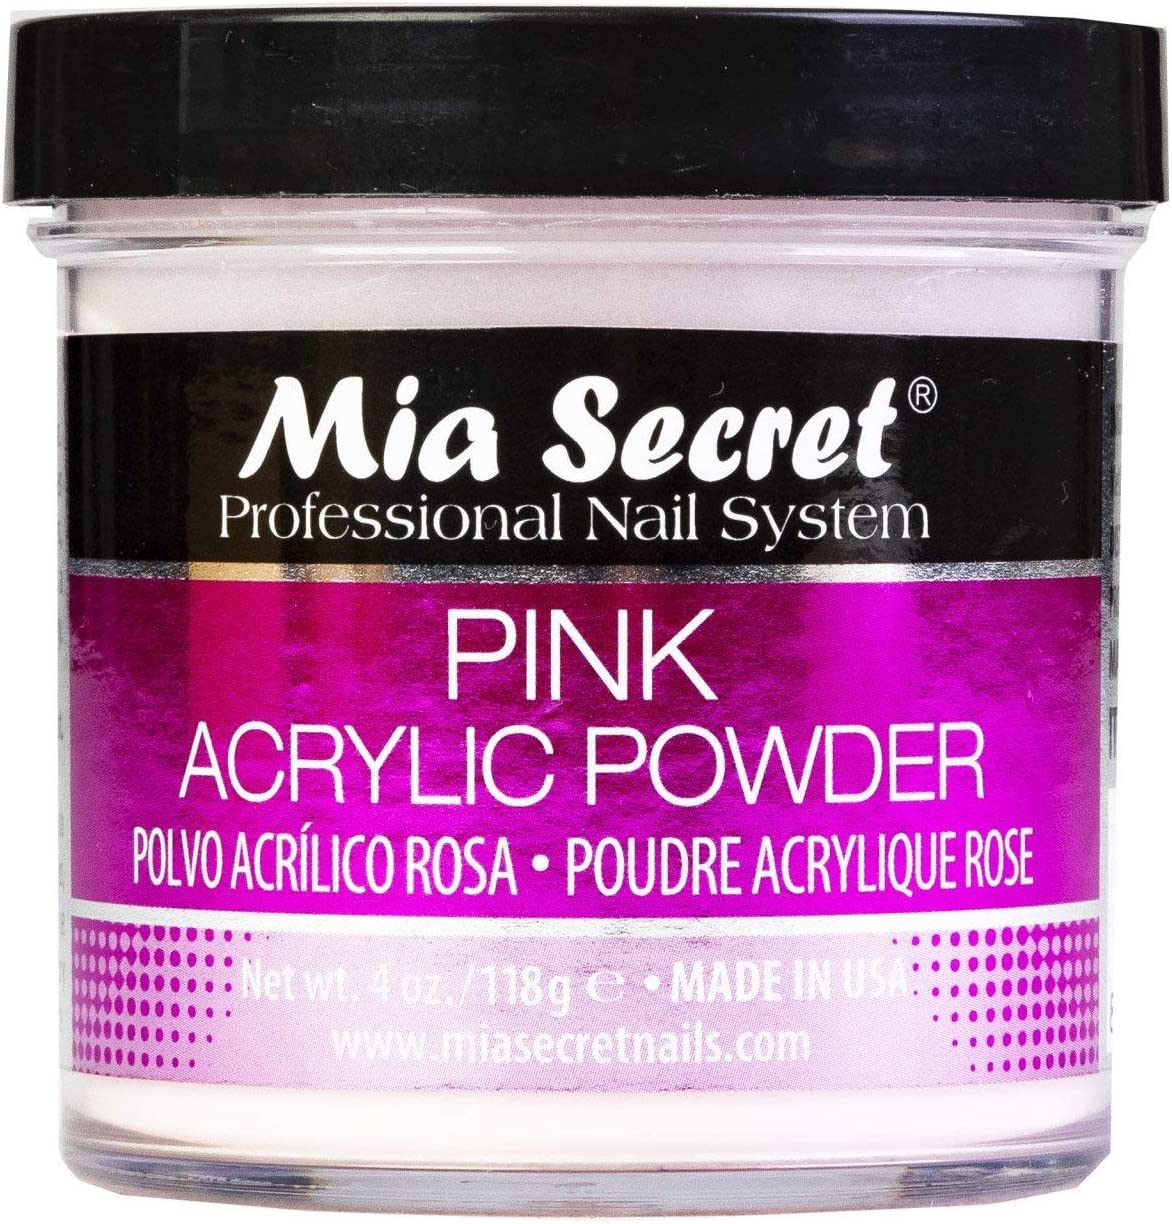 Mia Secret Pink Acrylic Powder 4 oz.